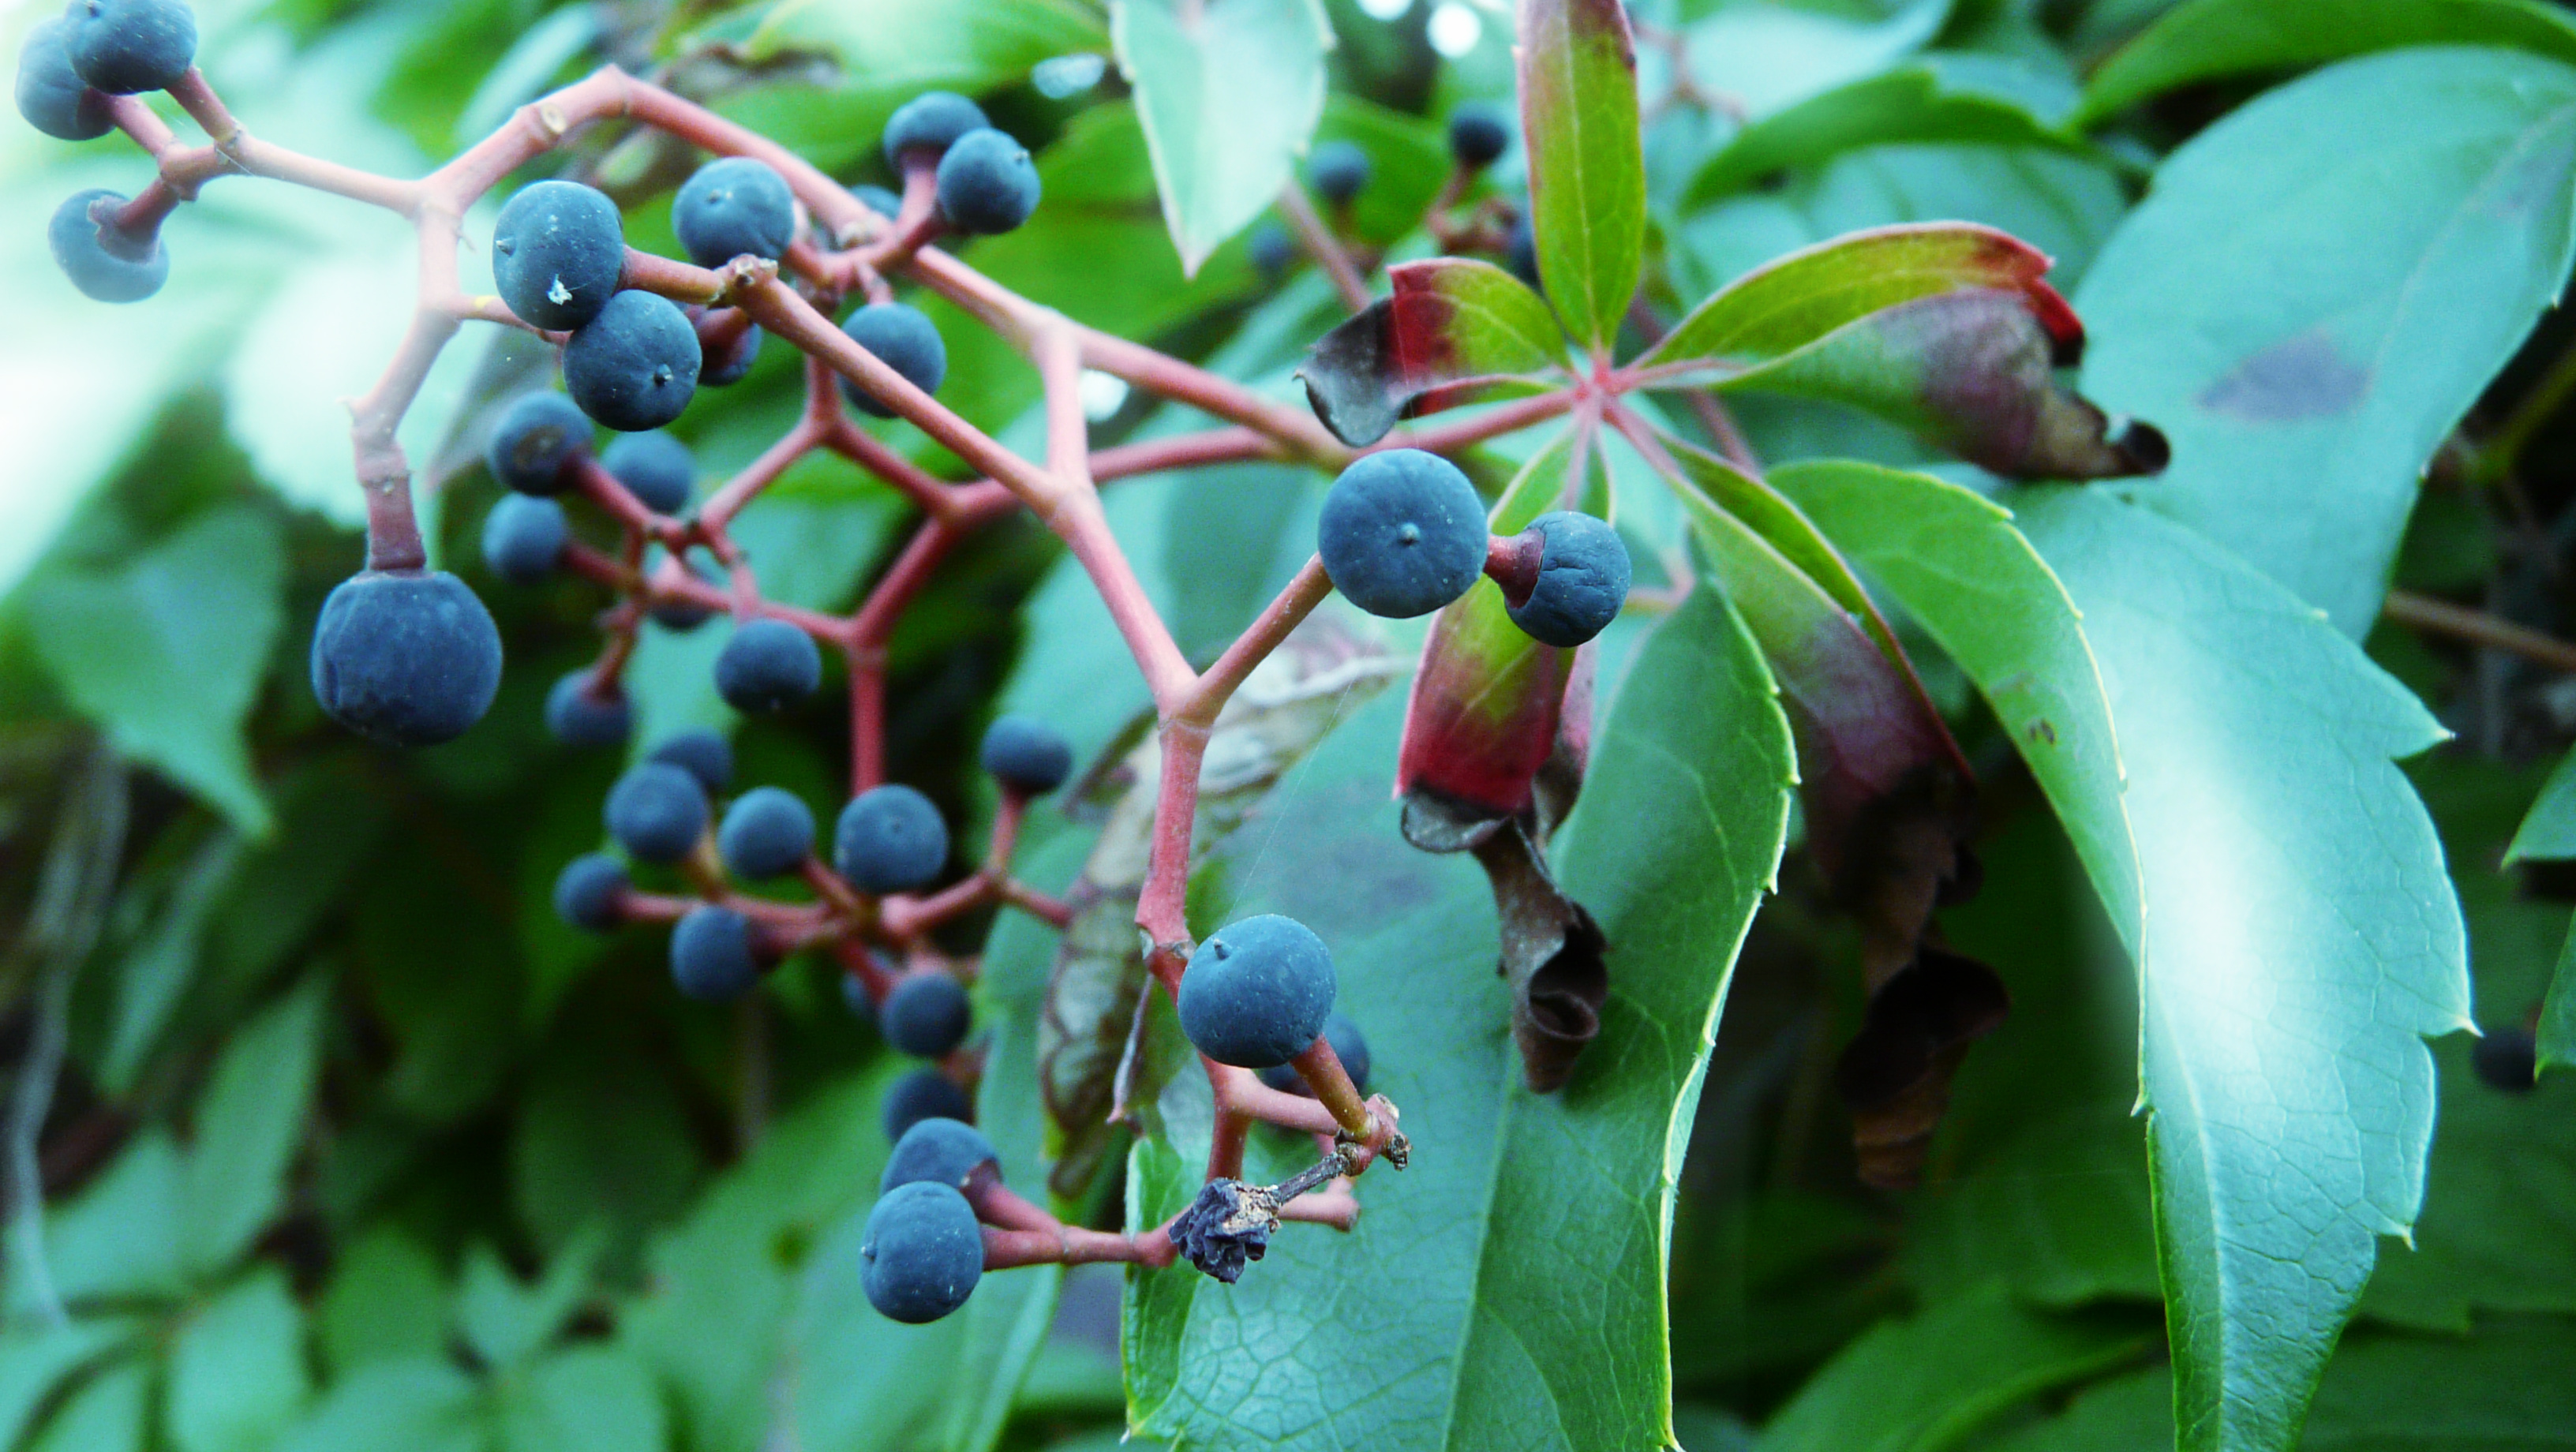 10 Lethal Plants That Are In Your Backyard Right Now